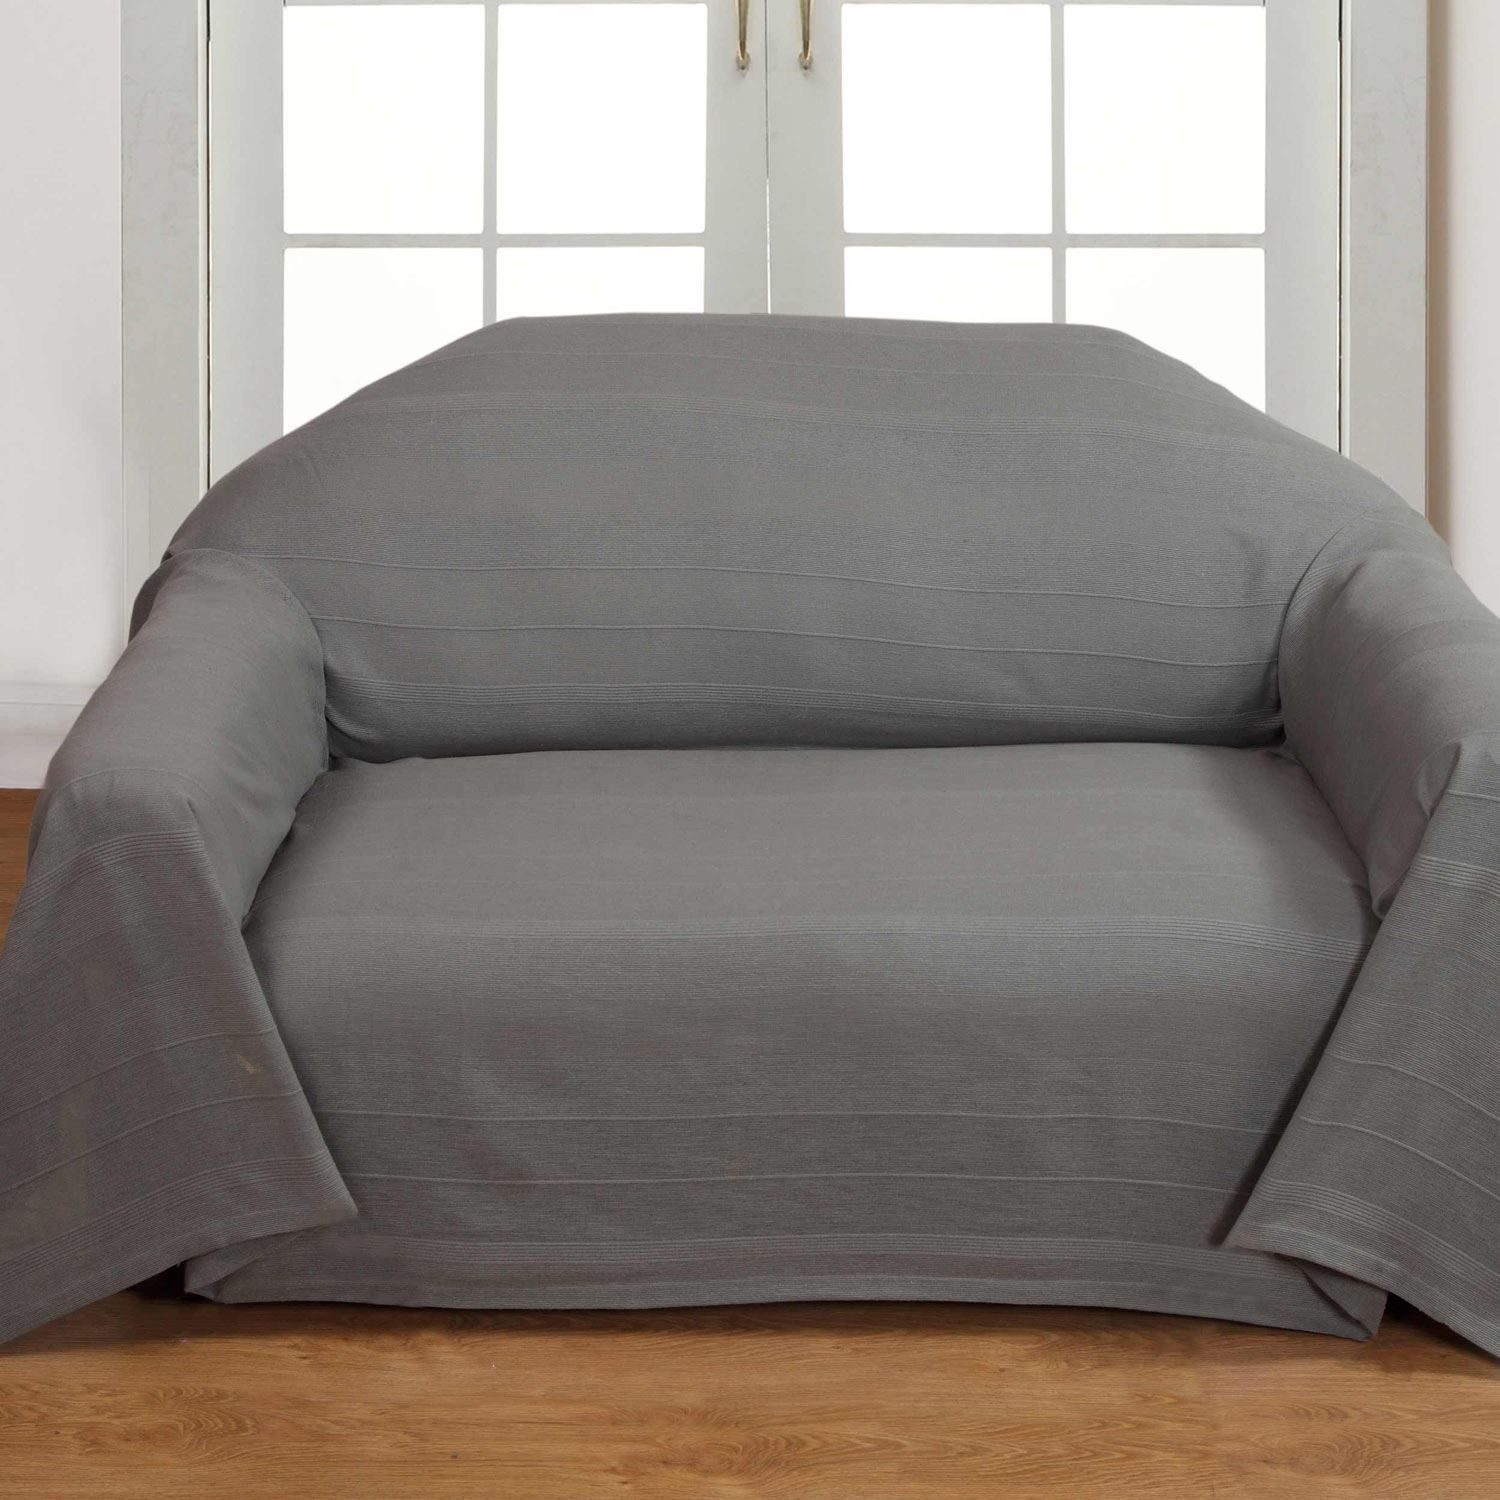 Chair Throw Covers Grey Sofa Throw Covers Apartment Sofa Throw Cover Grey Sofa